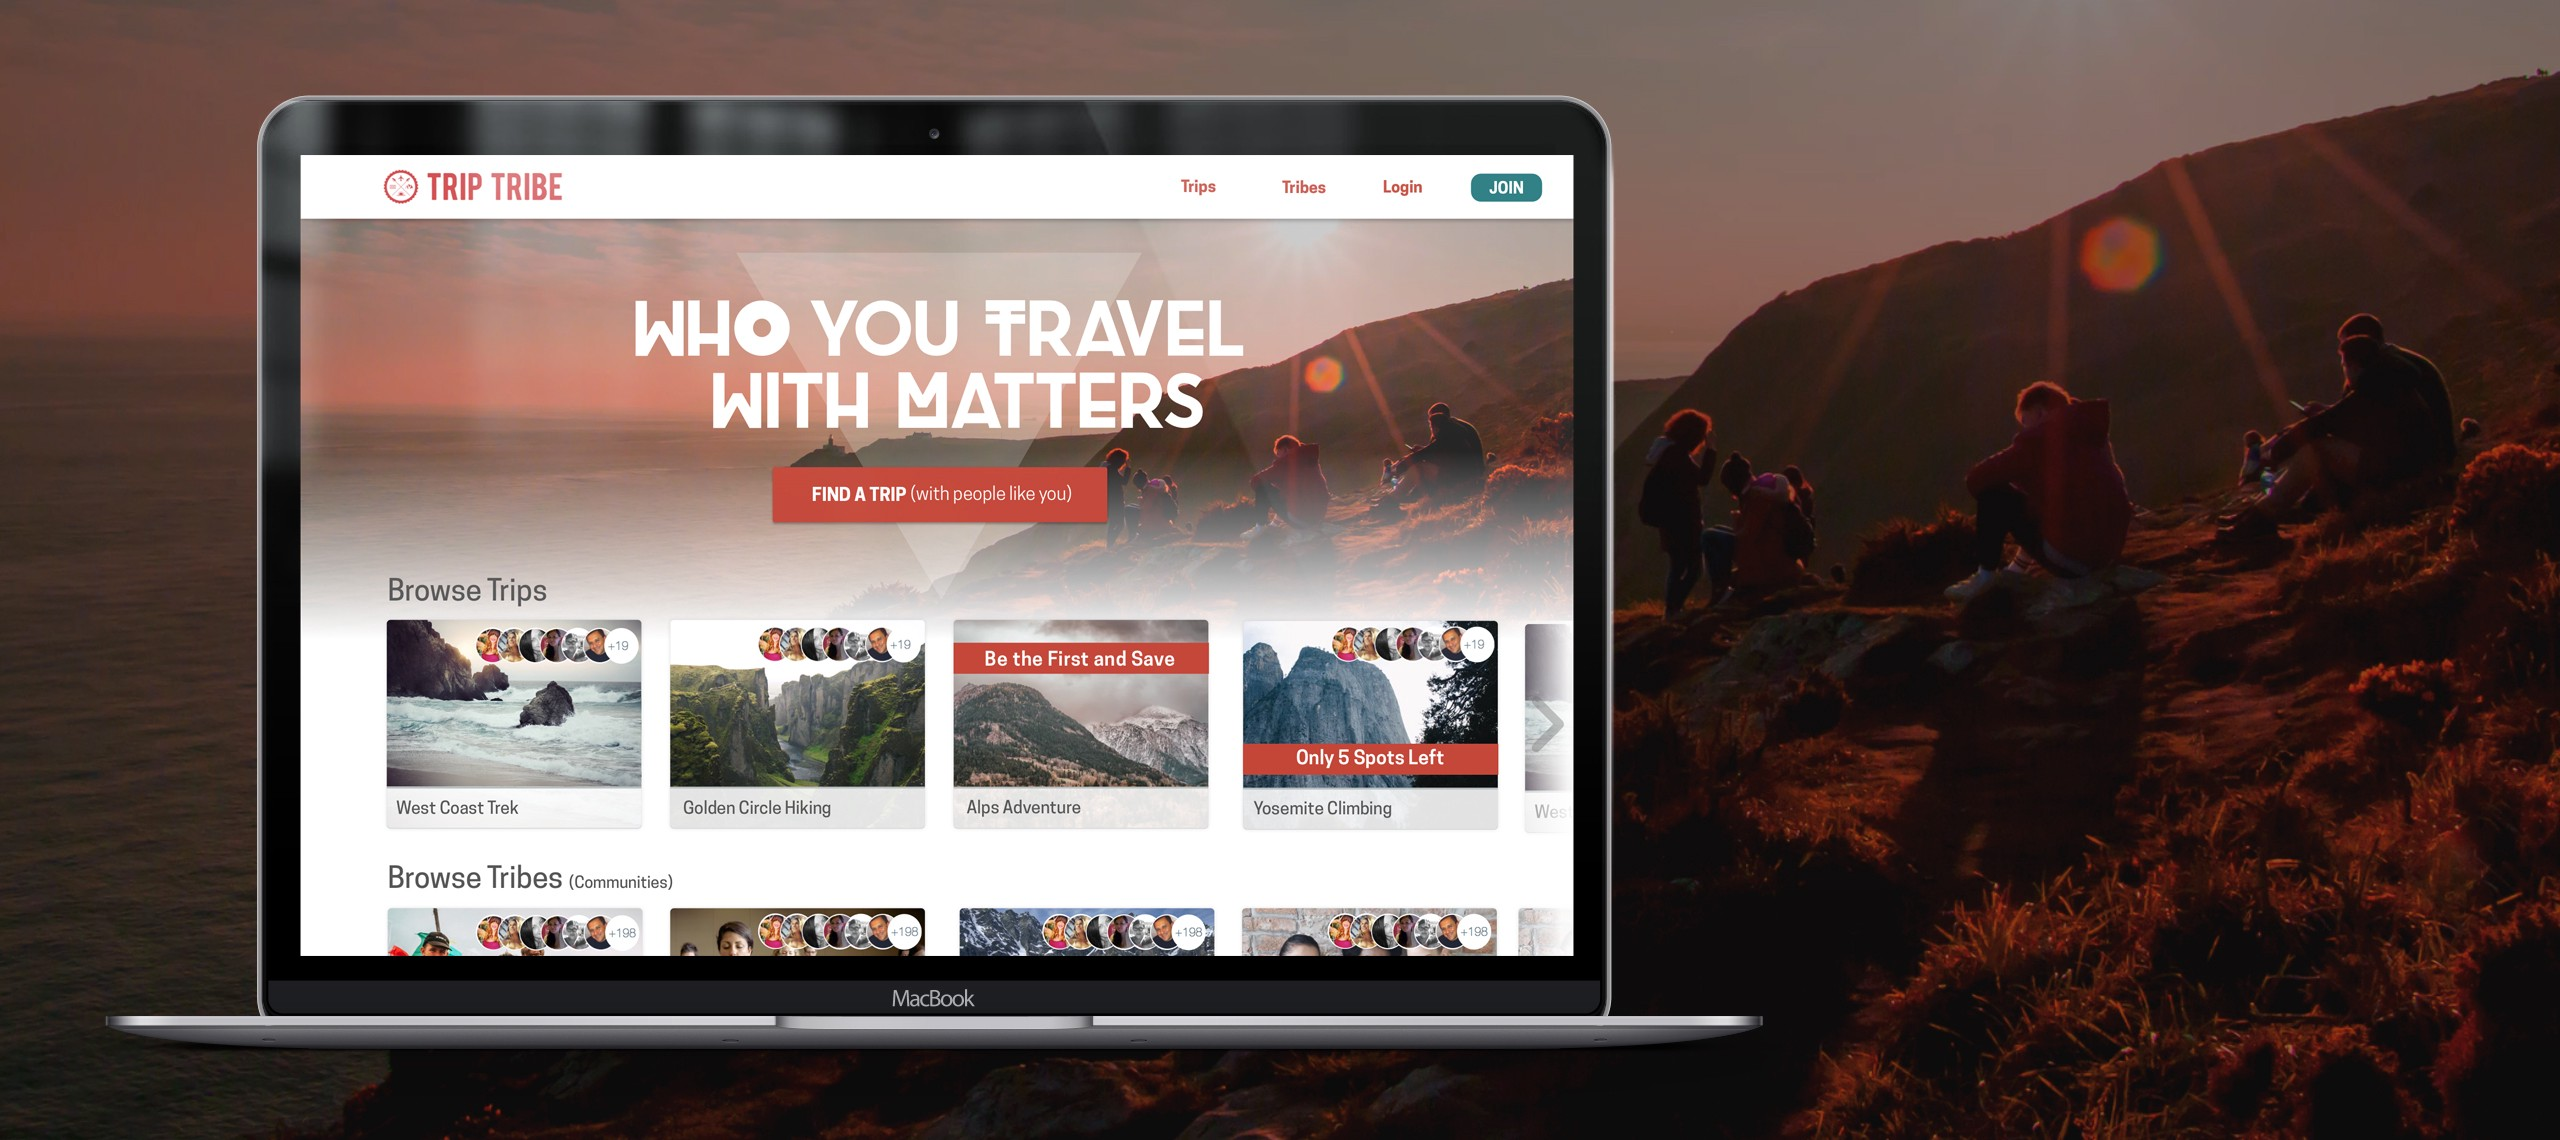 Trip Tribe travel website partial redesign — a UX case study